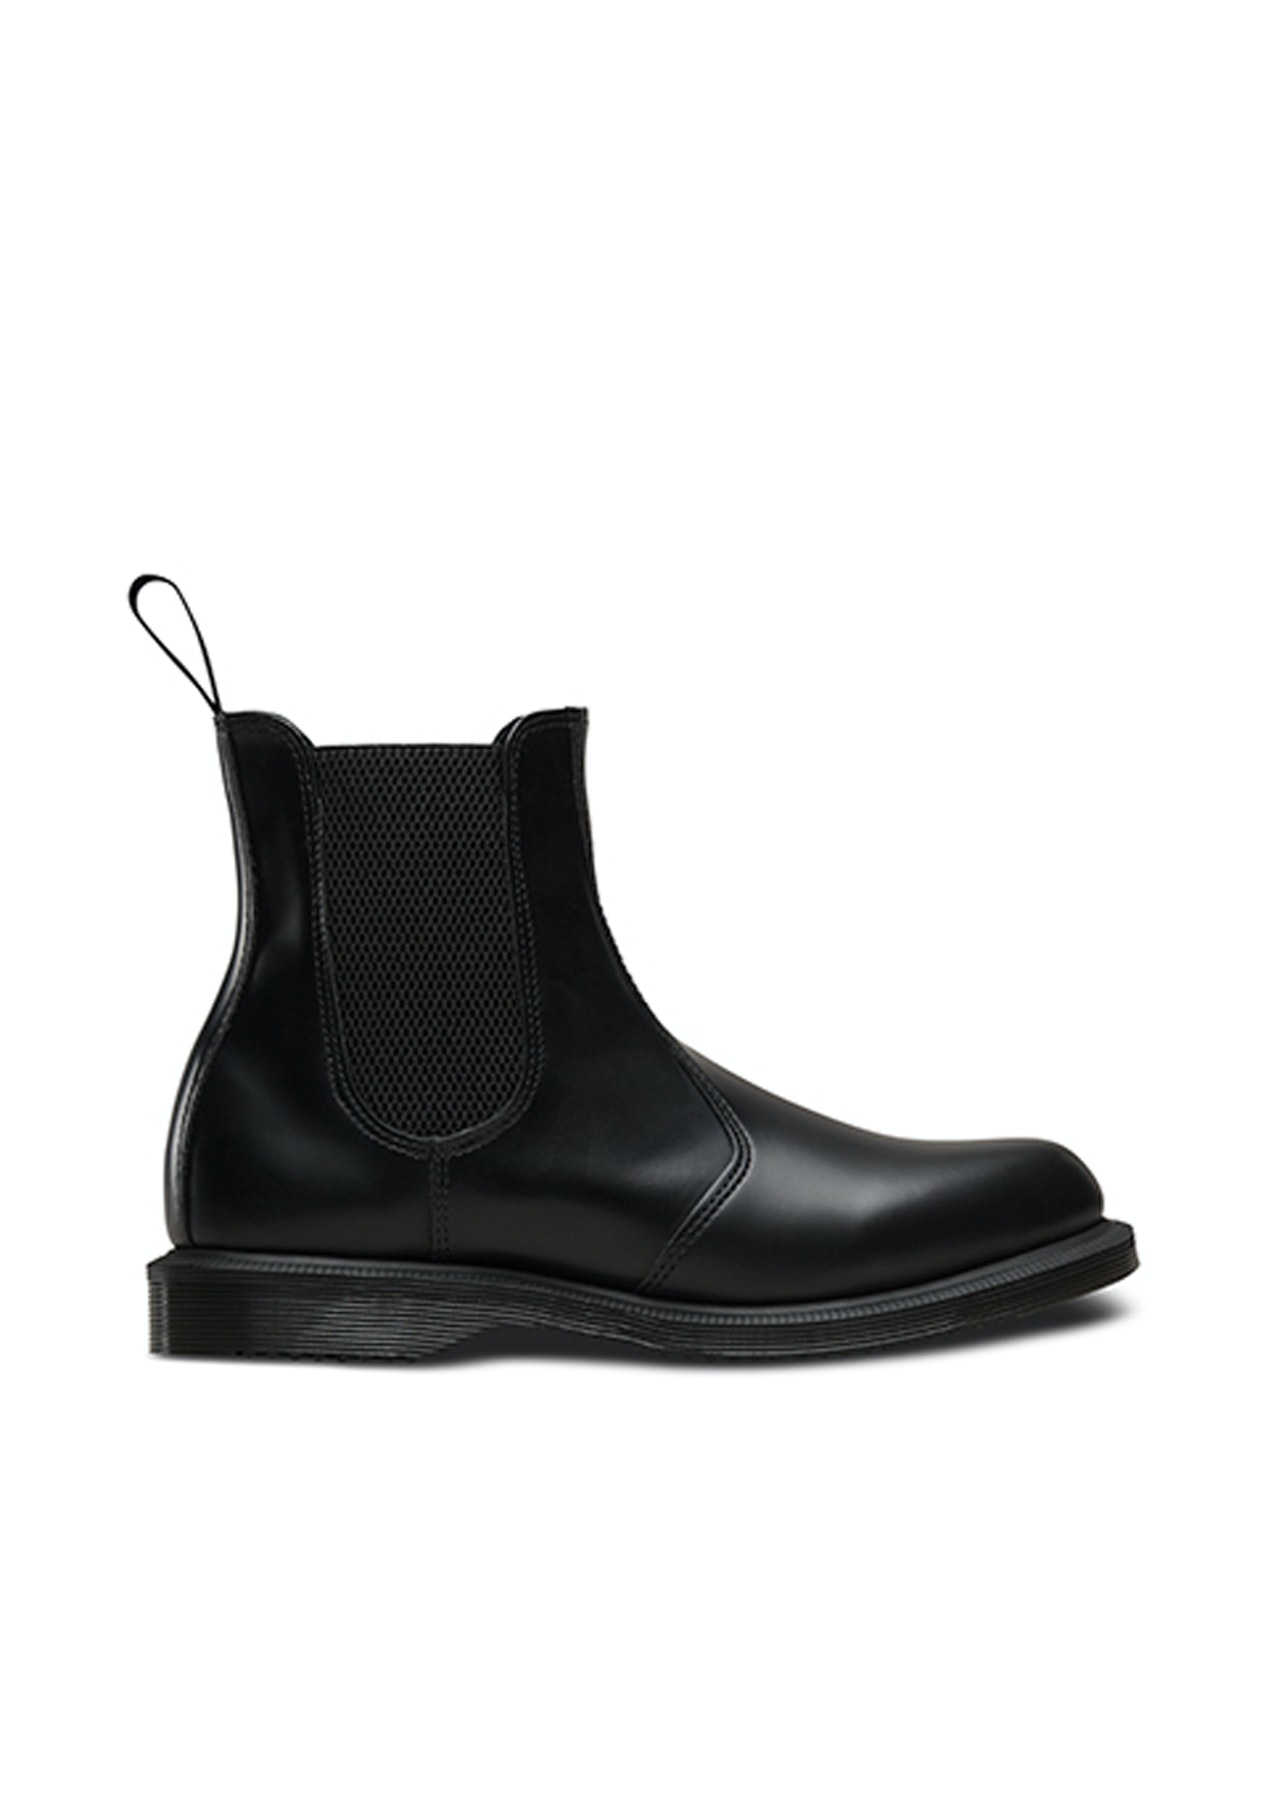 f8c73c18533 Dr Martens - Flora Smooth Chelsea Boot - Black - Boots For Winter - Onceit